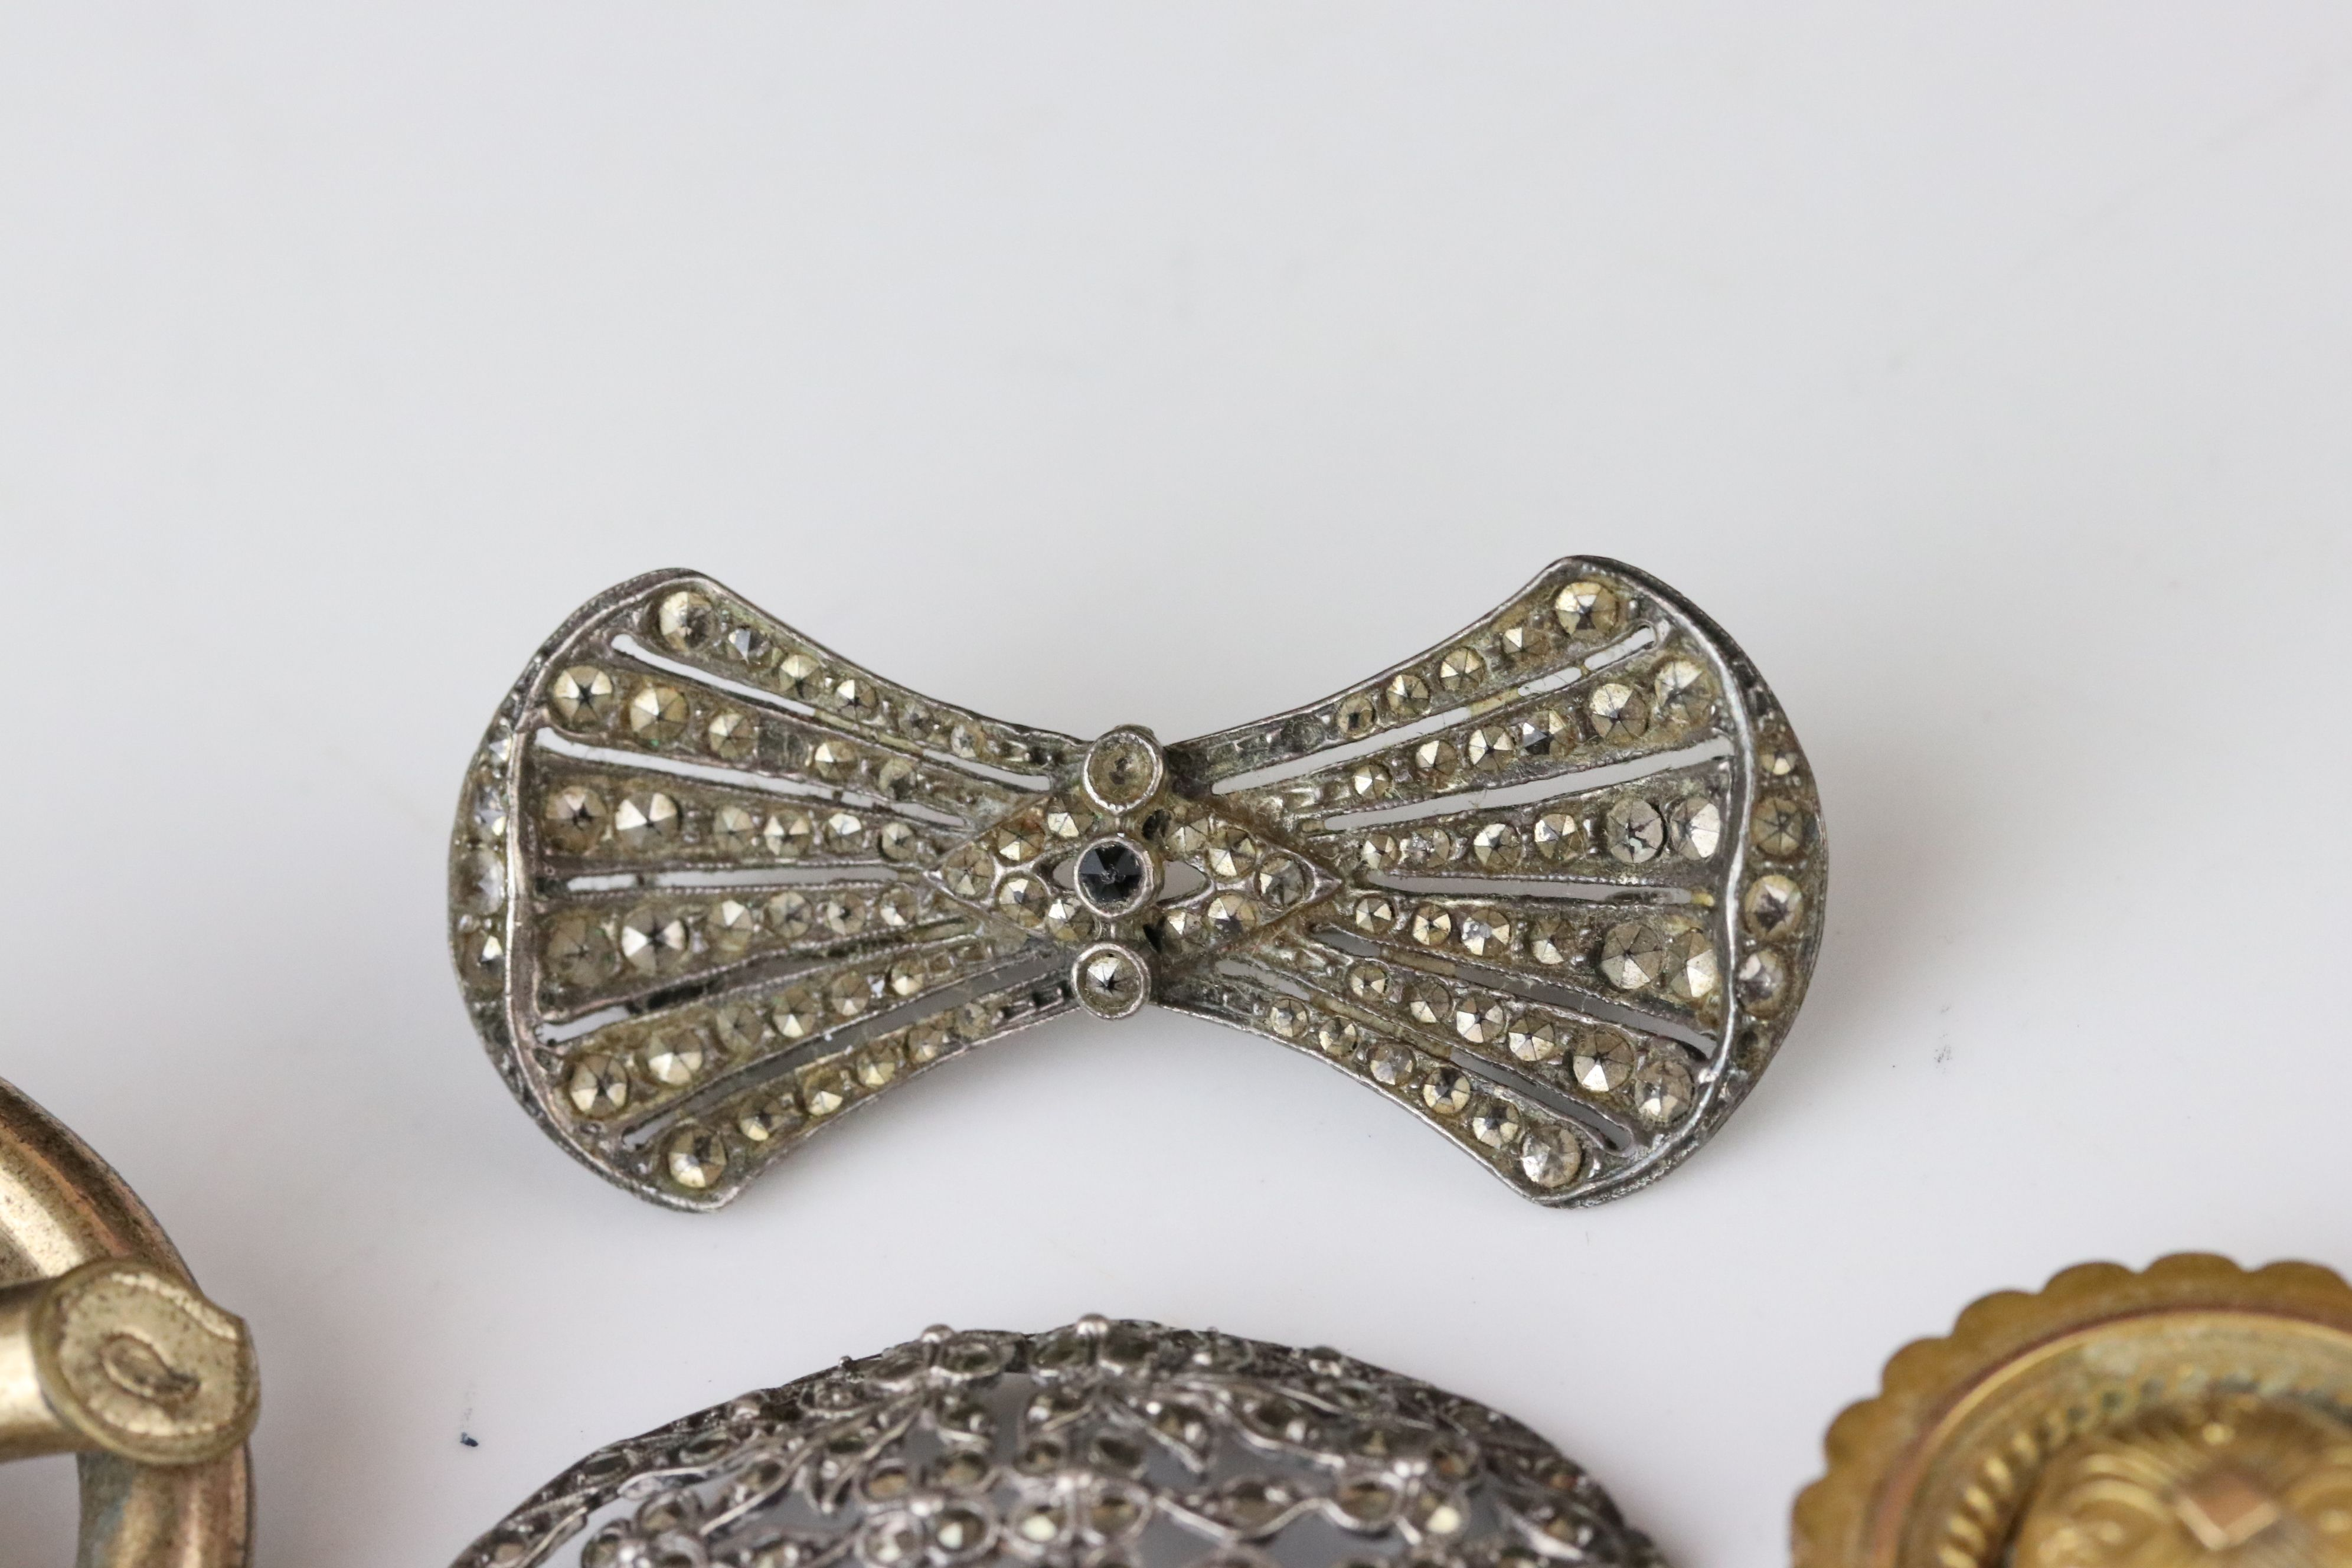 Collection of Victorian and later costume jewellery to include large knot brooch; three stone - Image 11 of 13